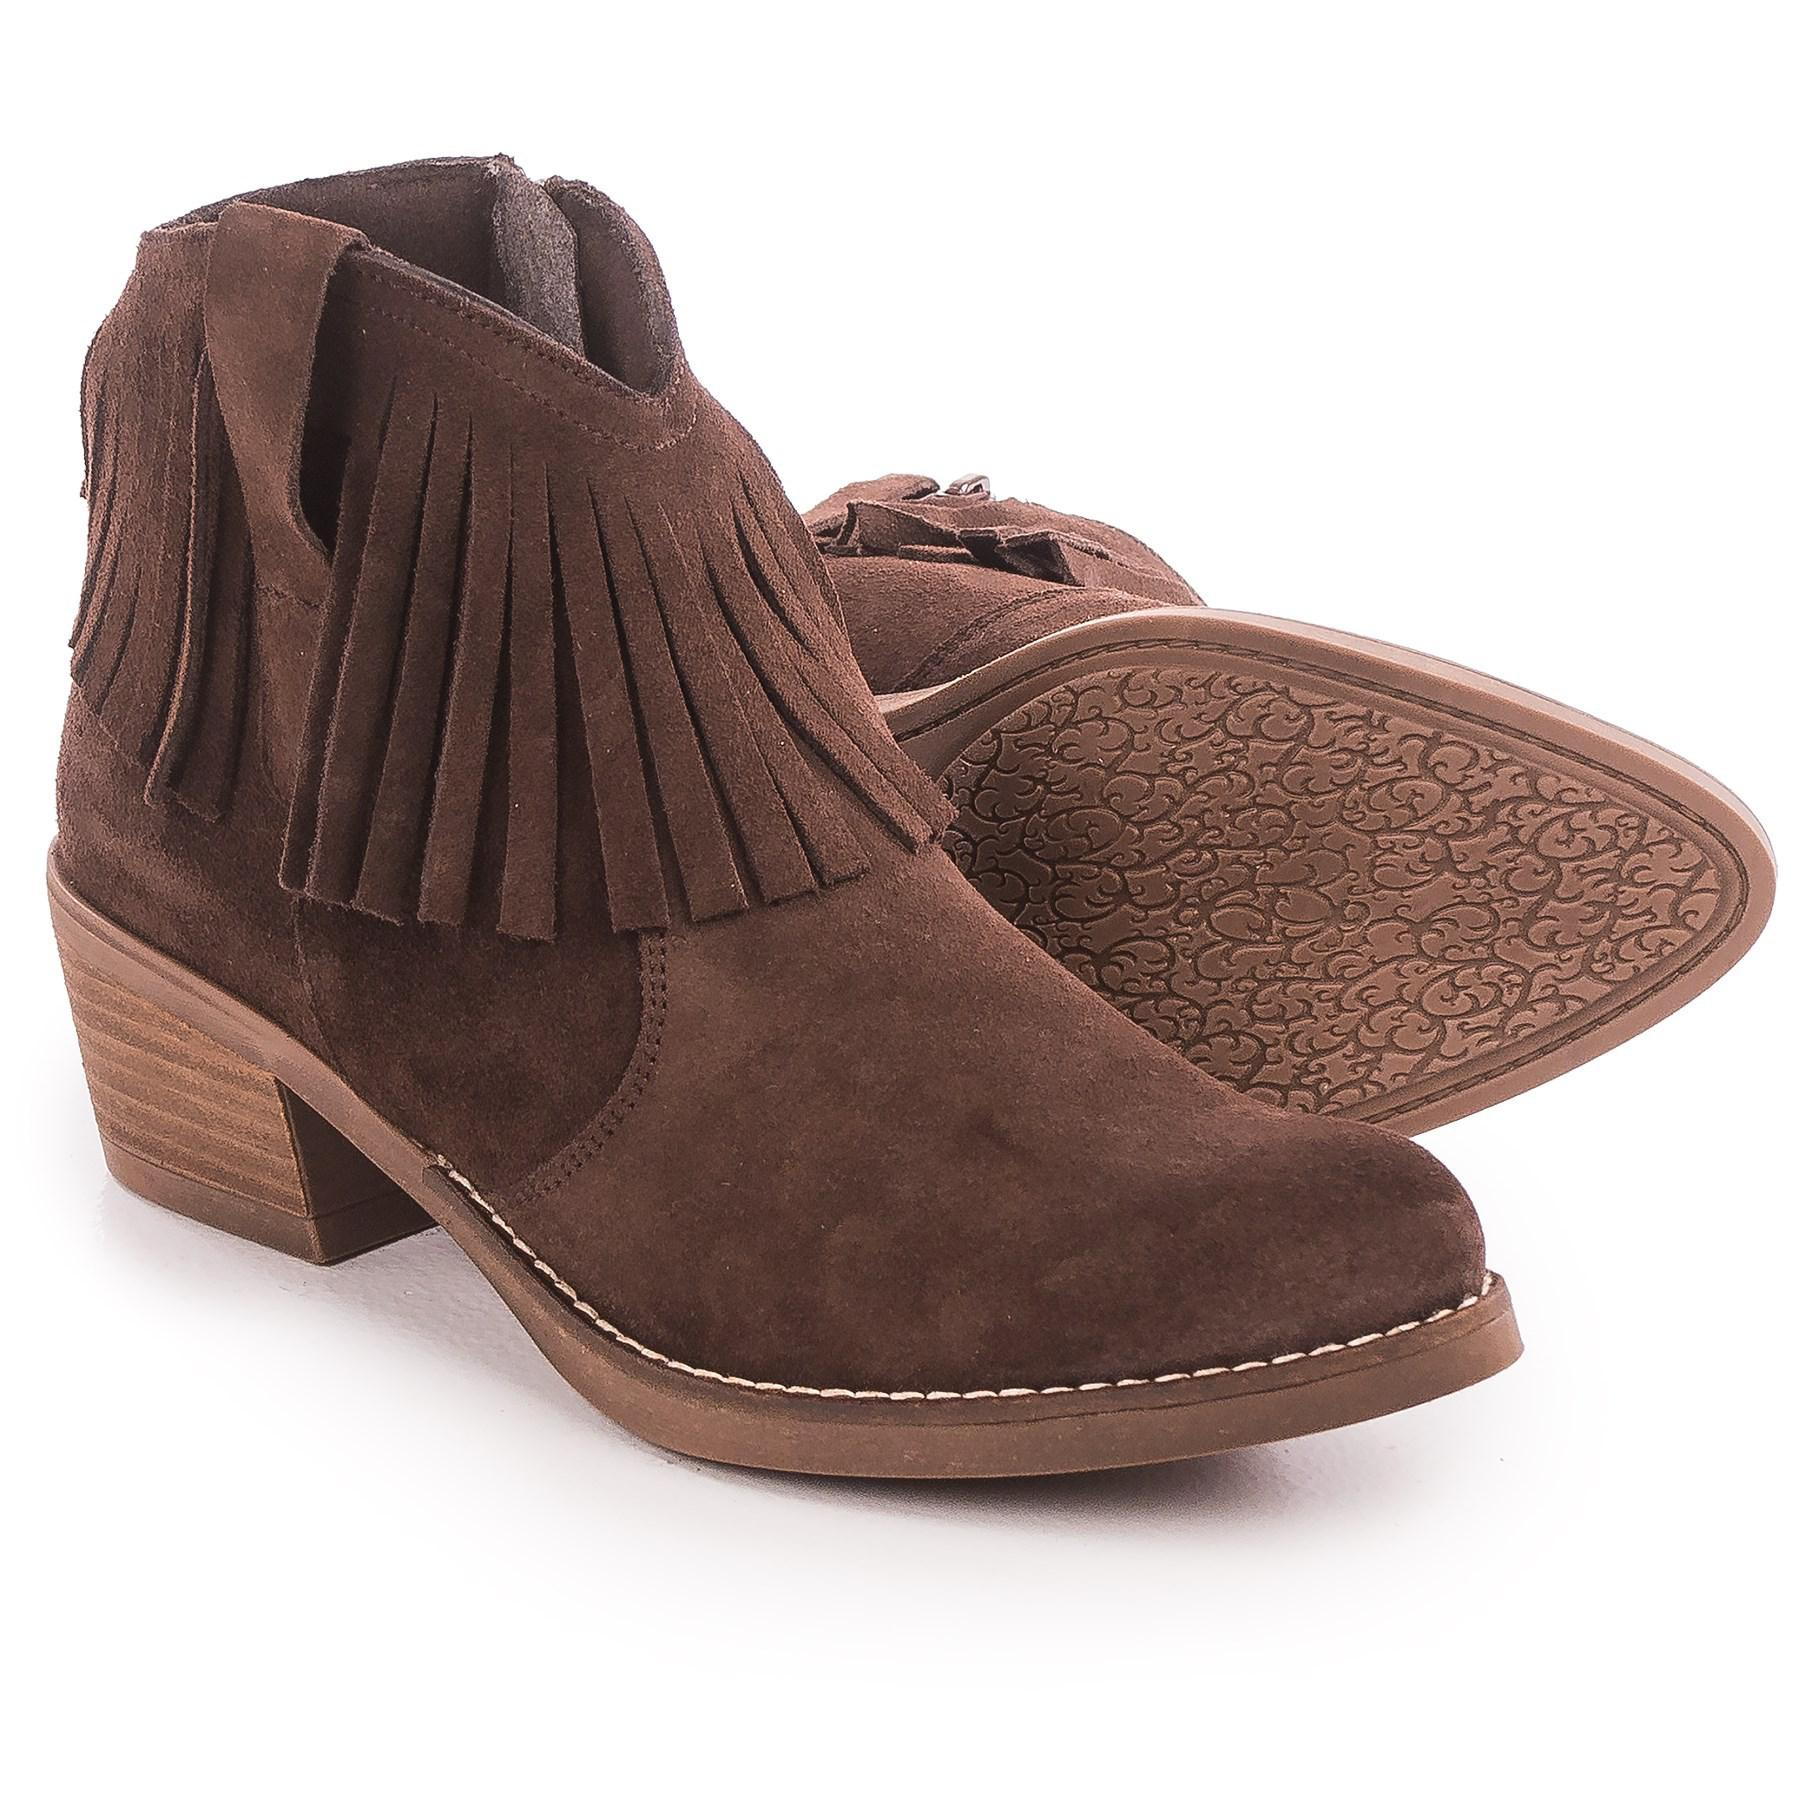 15b72ccd966f8c Gallery. Previously sold at  Sierra Trading Post · Women s Suede Boots  Women s Sam Edelman ...